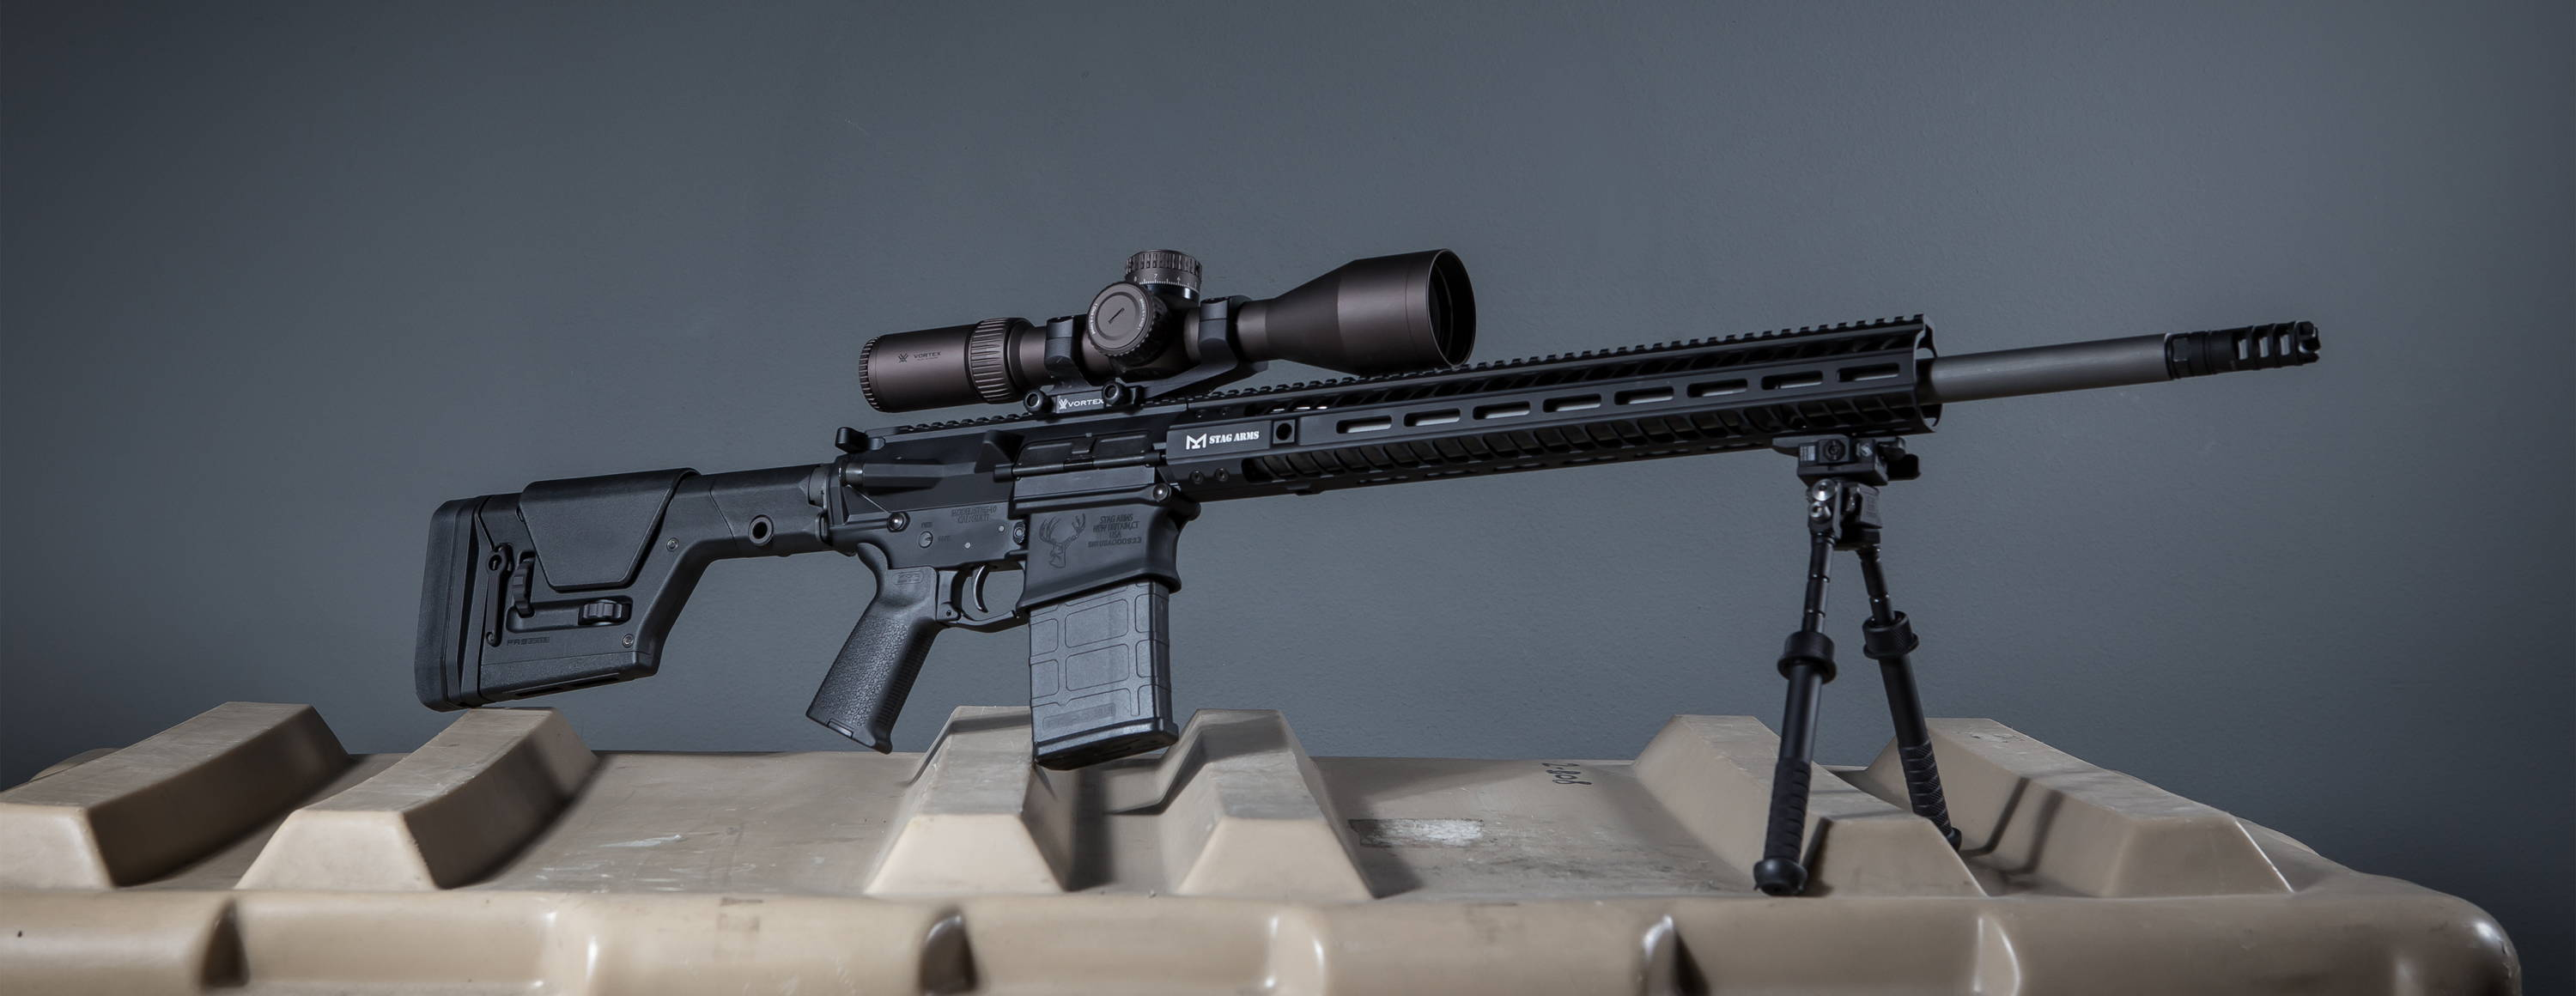 Browse AR10 Rifles, Uppers & Lowers